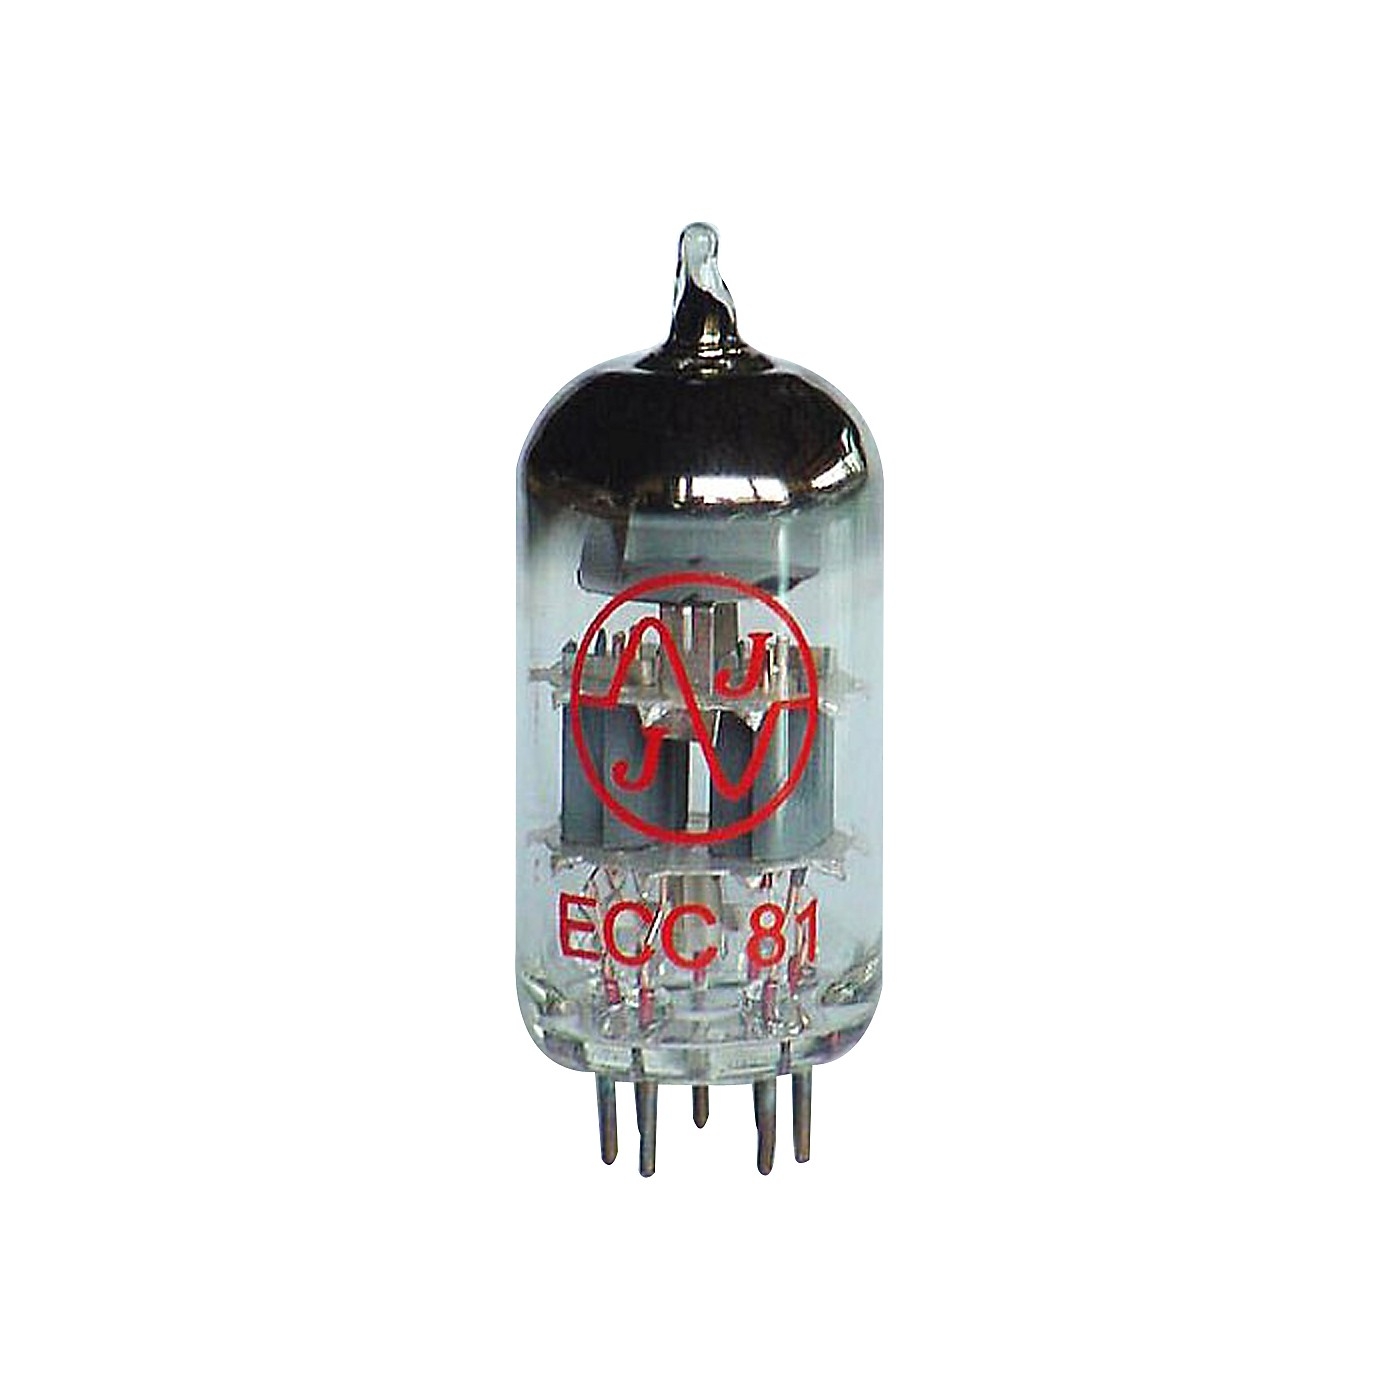 JJ Electronics 12AT7 / ECC81 Preamp Vacuum Tube thumbnail